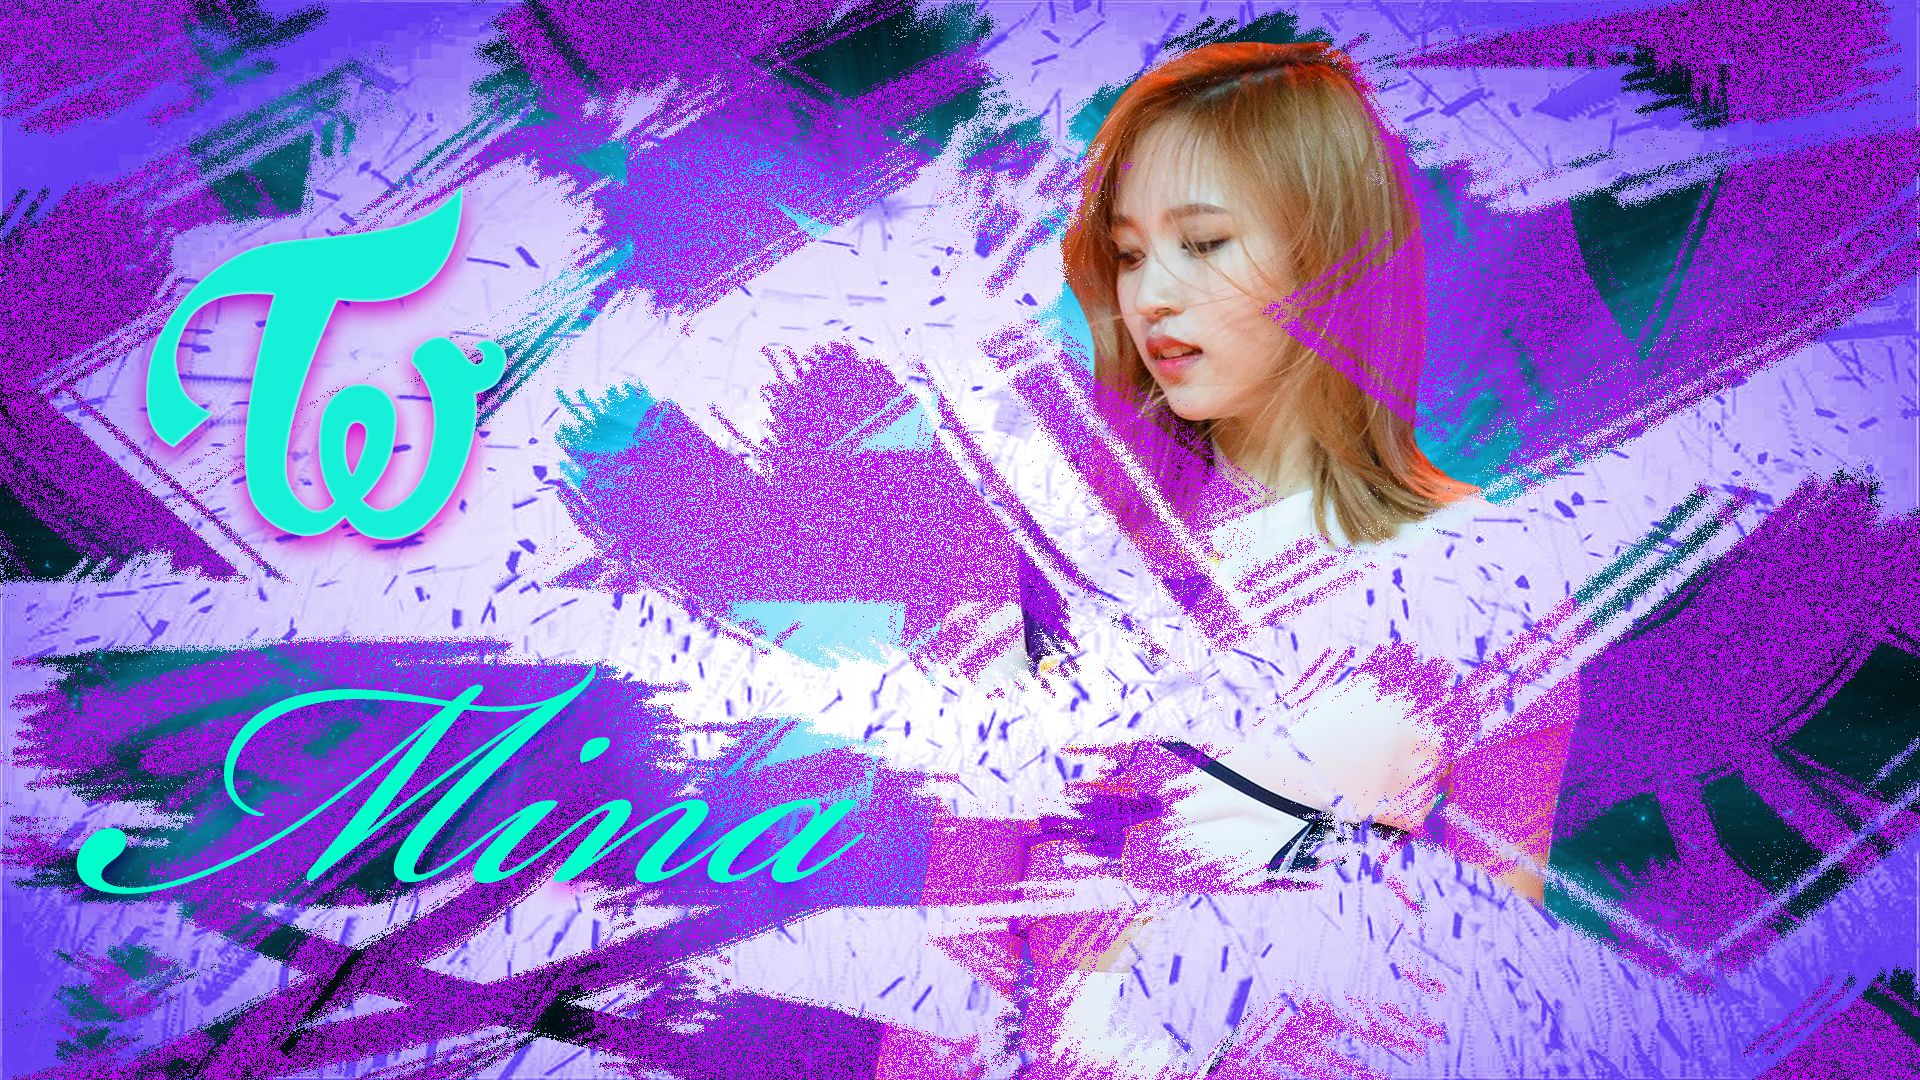 Mina Wallpaper by oncefortwice on DeviantArt